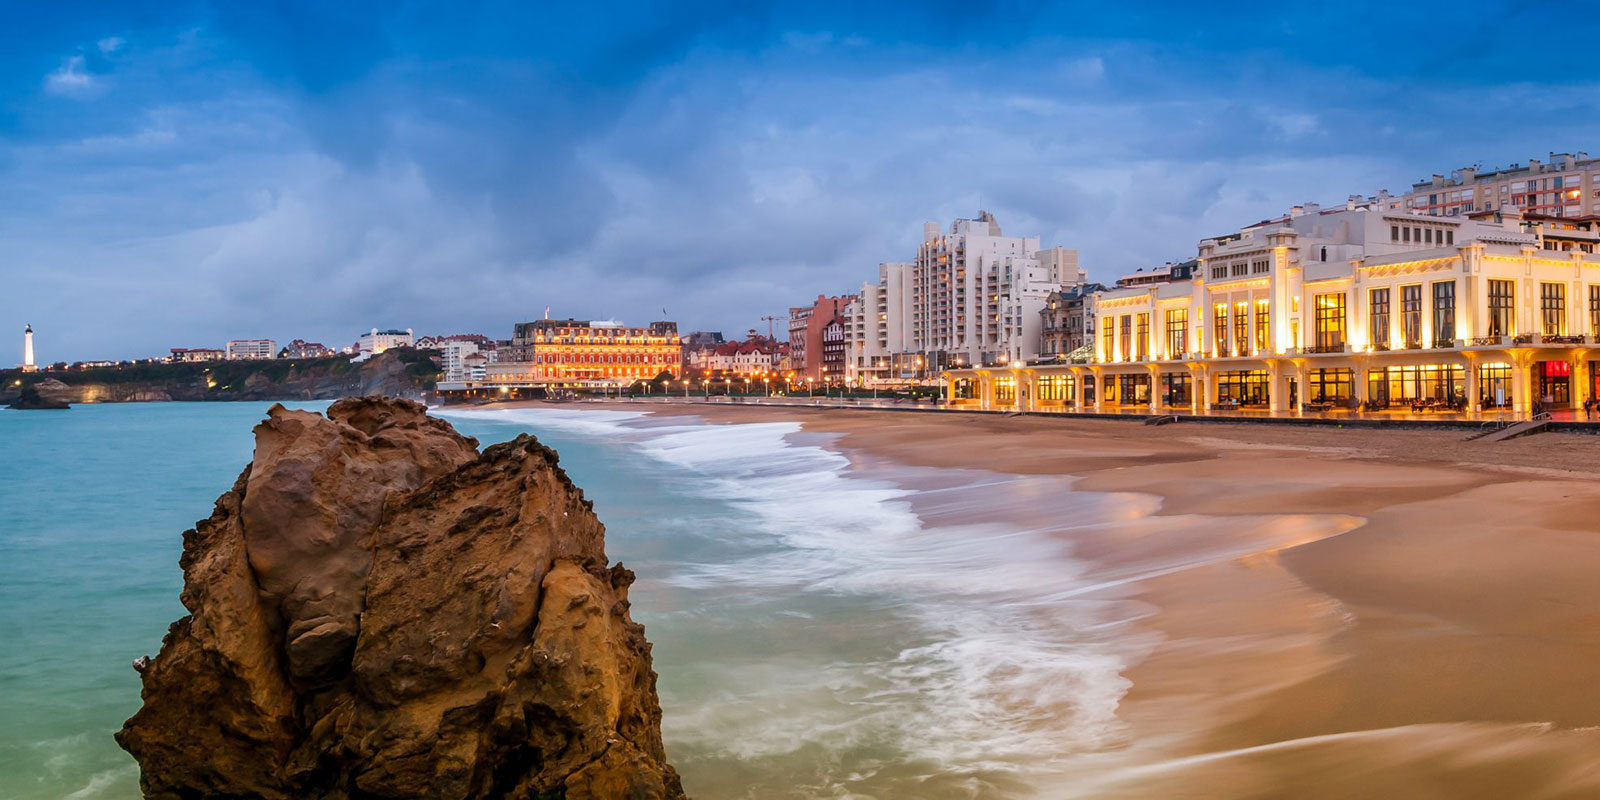 biarritz-BAB-bayonne-anglet-plage-casino-cote-basque-sud-landes-mer-ocean-rocher-lumiere-grand-hotel-phare